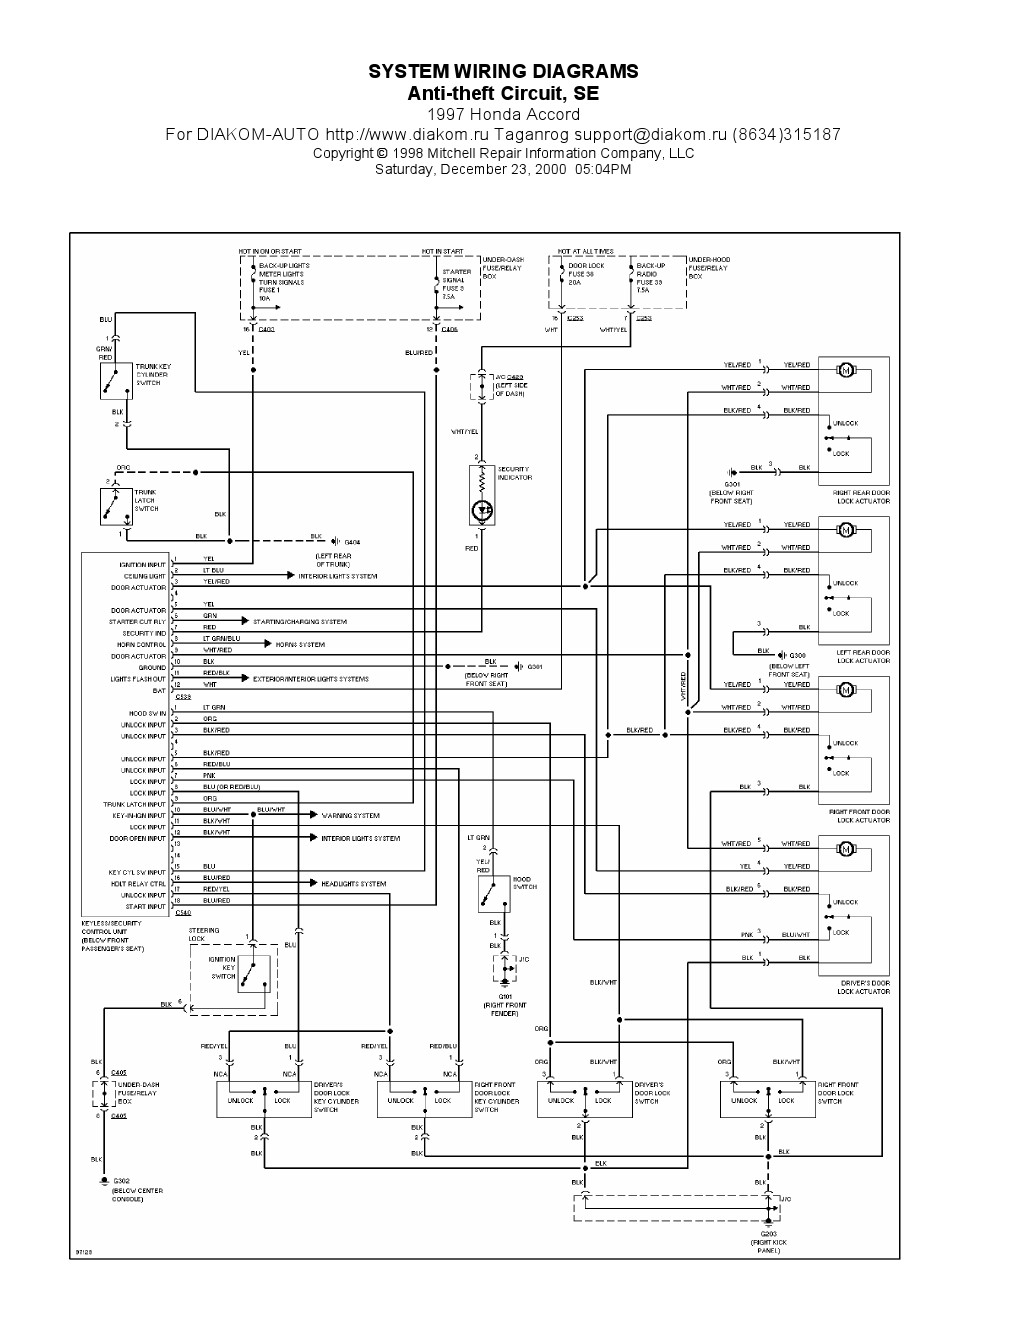 1997 honda accord wiring diagram pdf sample wiring diagram sample rh faceitsalon com 1997 honda odyssey wiring diagram 1997 honda crv wiring diagram